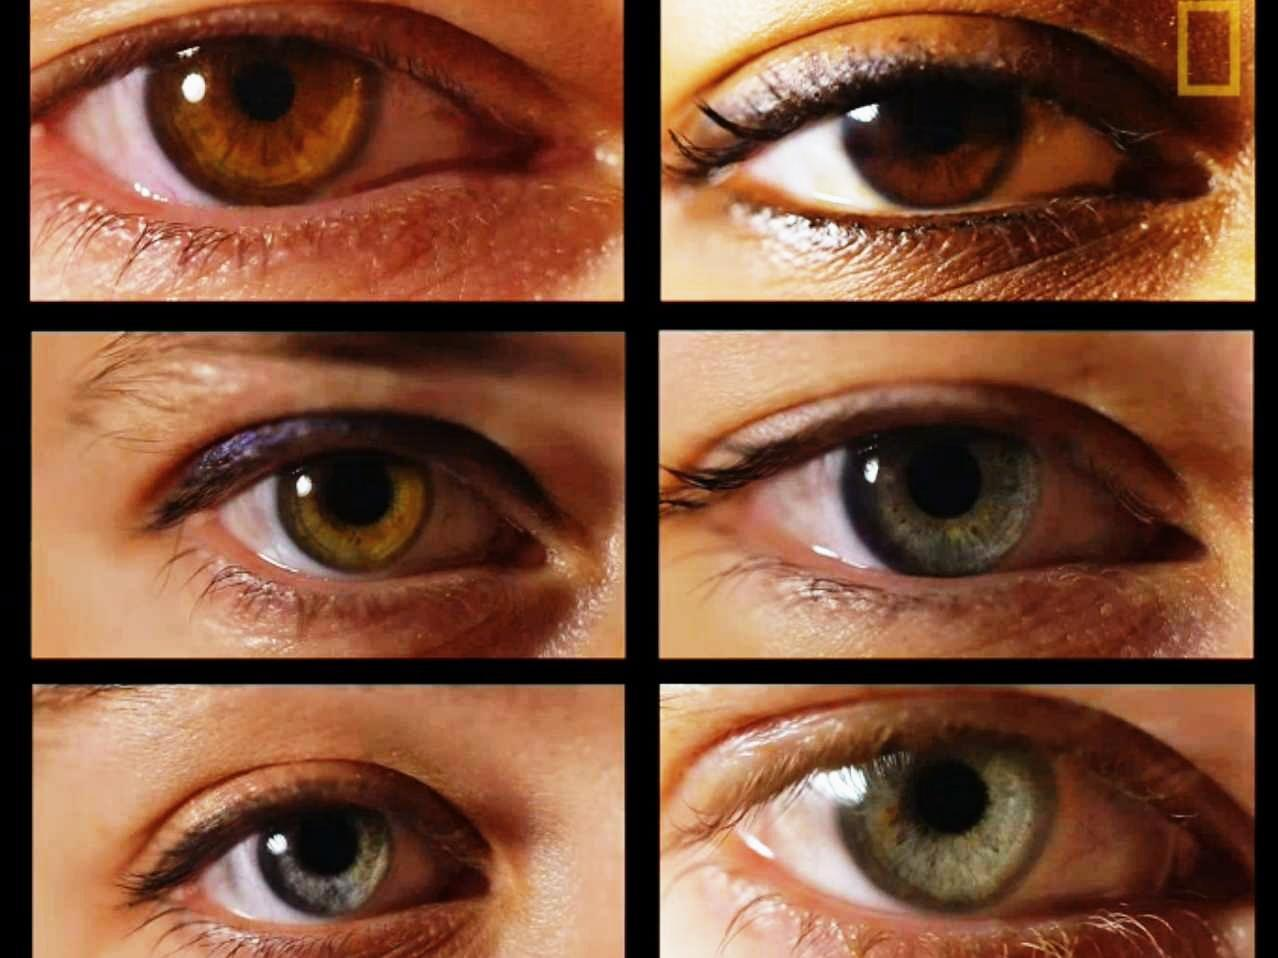 What is you eye colour?